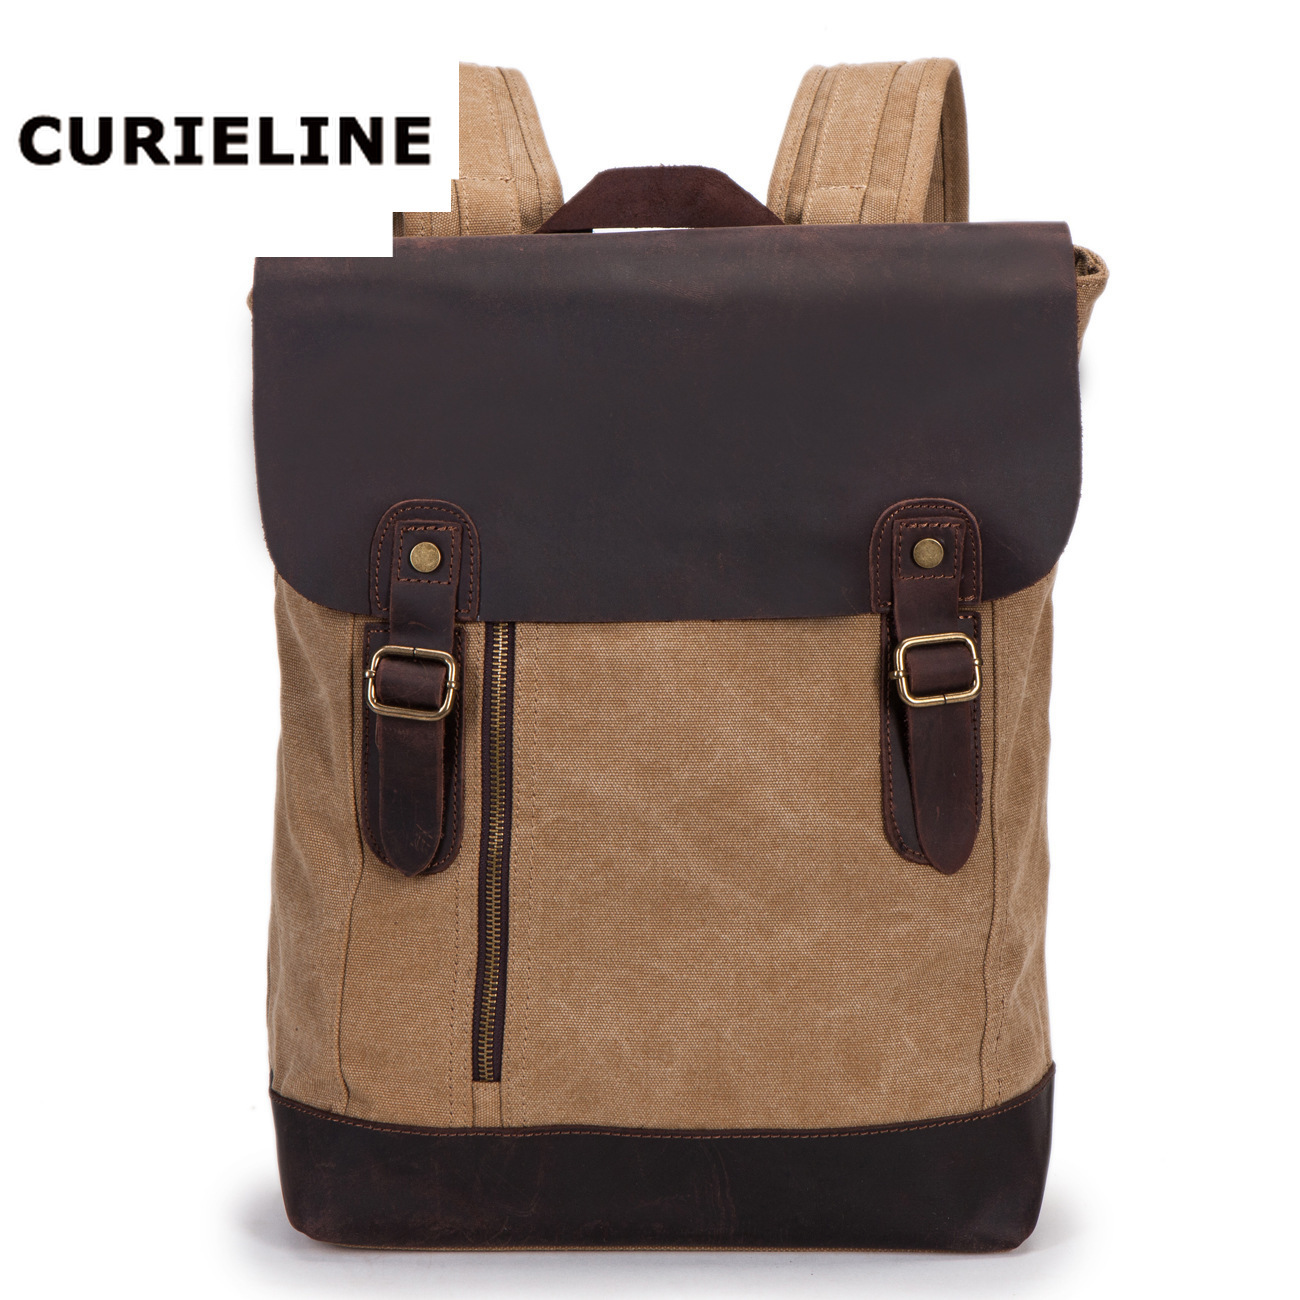 CURIELINE leather rucksack multi function mens travelling bag student leather computer backpackCURIELINE leather rucksack multi function mens travelling bag student leather computer backpack